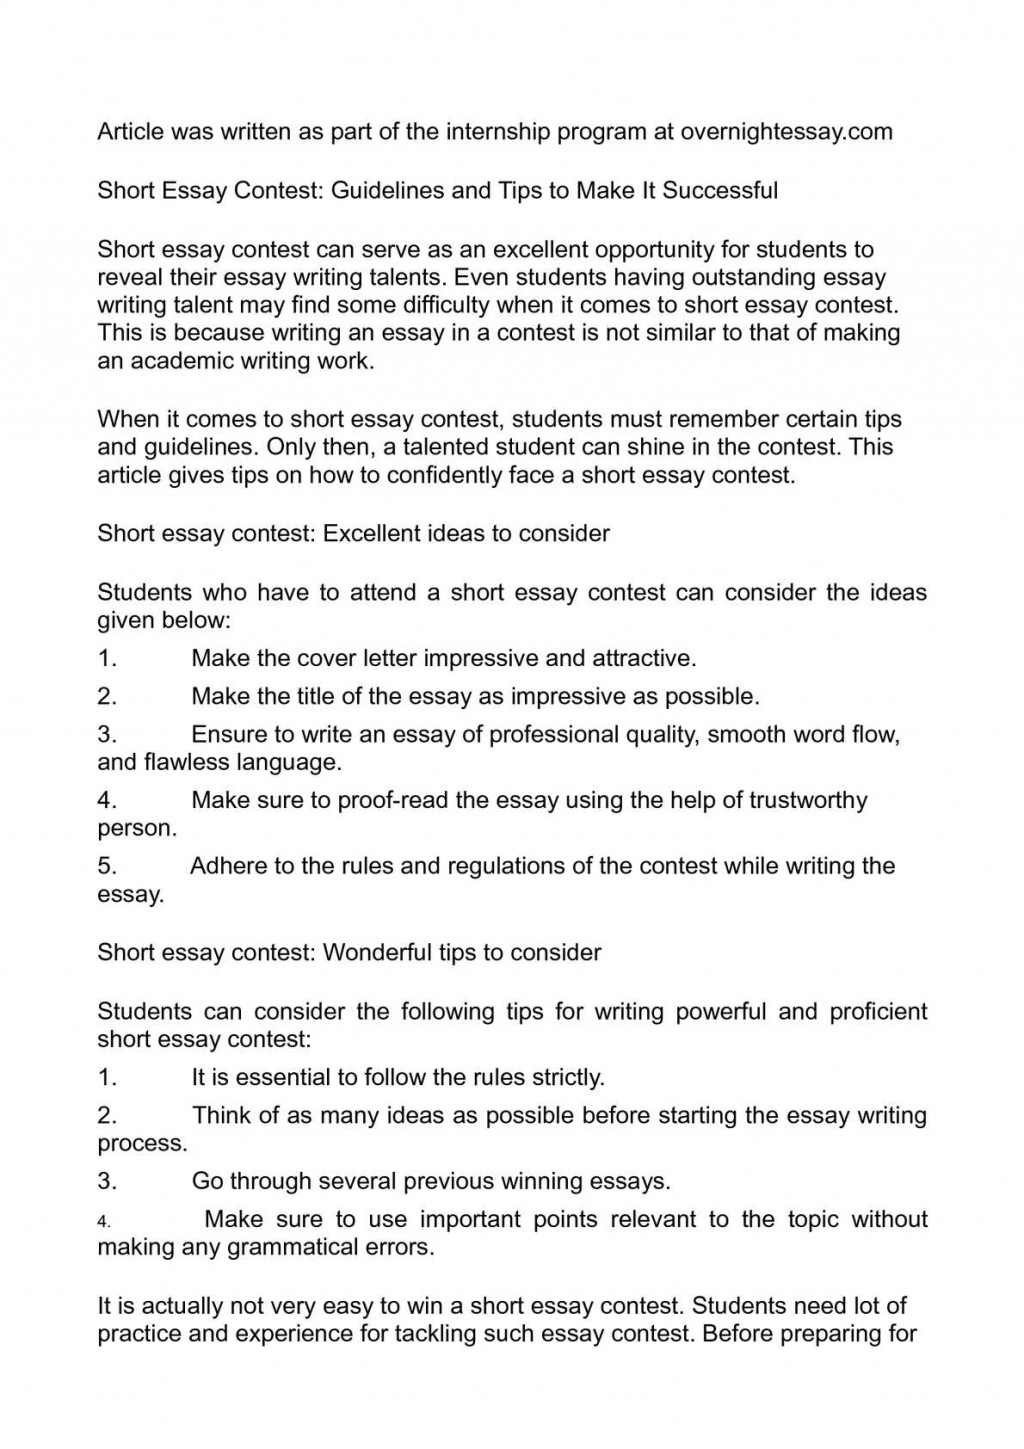 005 Essay Example Short Essays Impressive Examples For Primary School Narrative To Read Small In Spanish Large